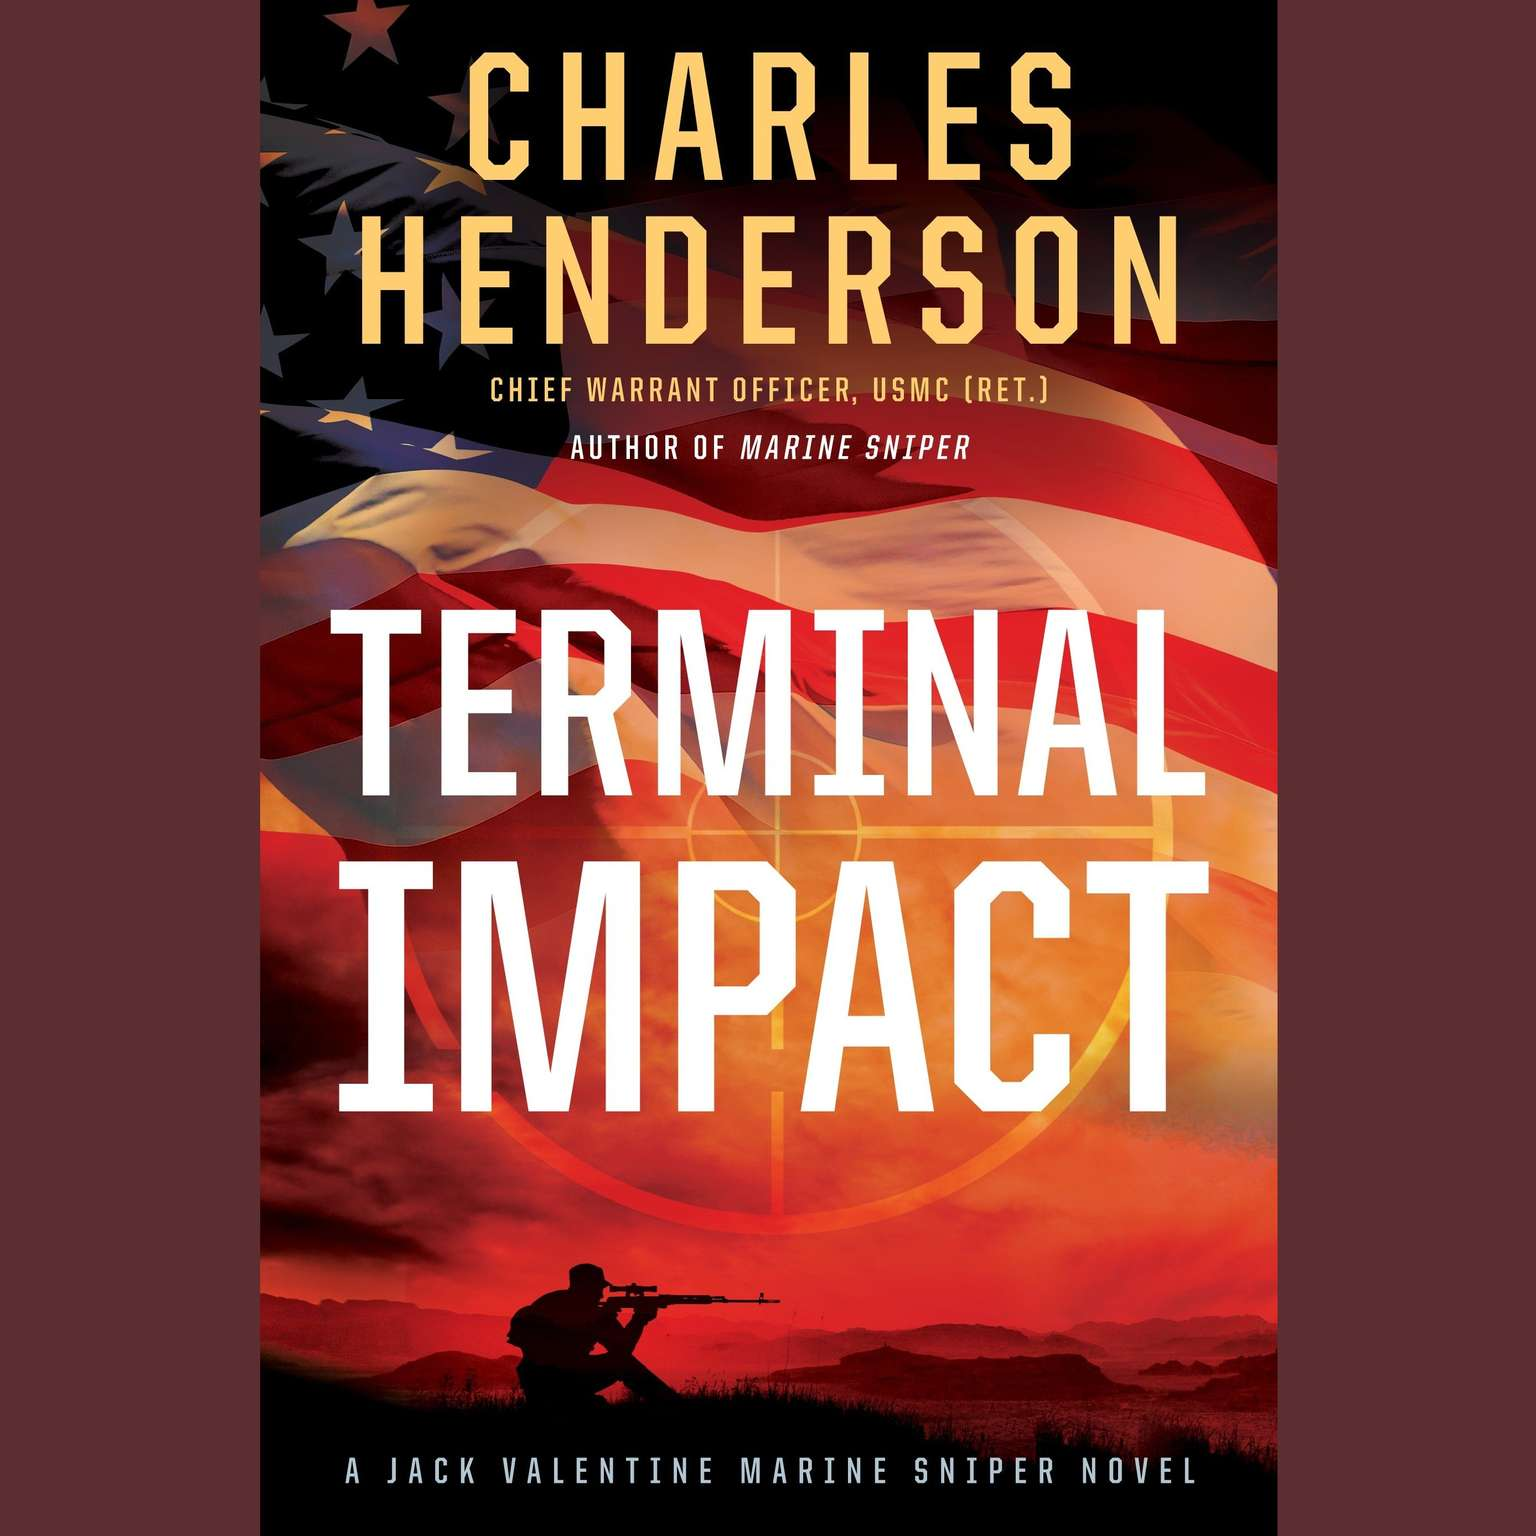 Printable Terminal Impact: A Marine Sniper Novel Audiobook Cover Art